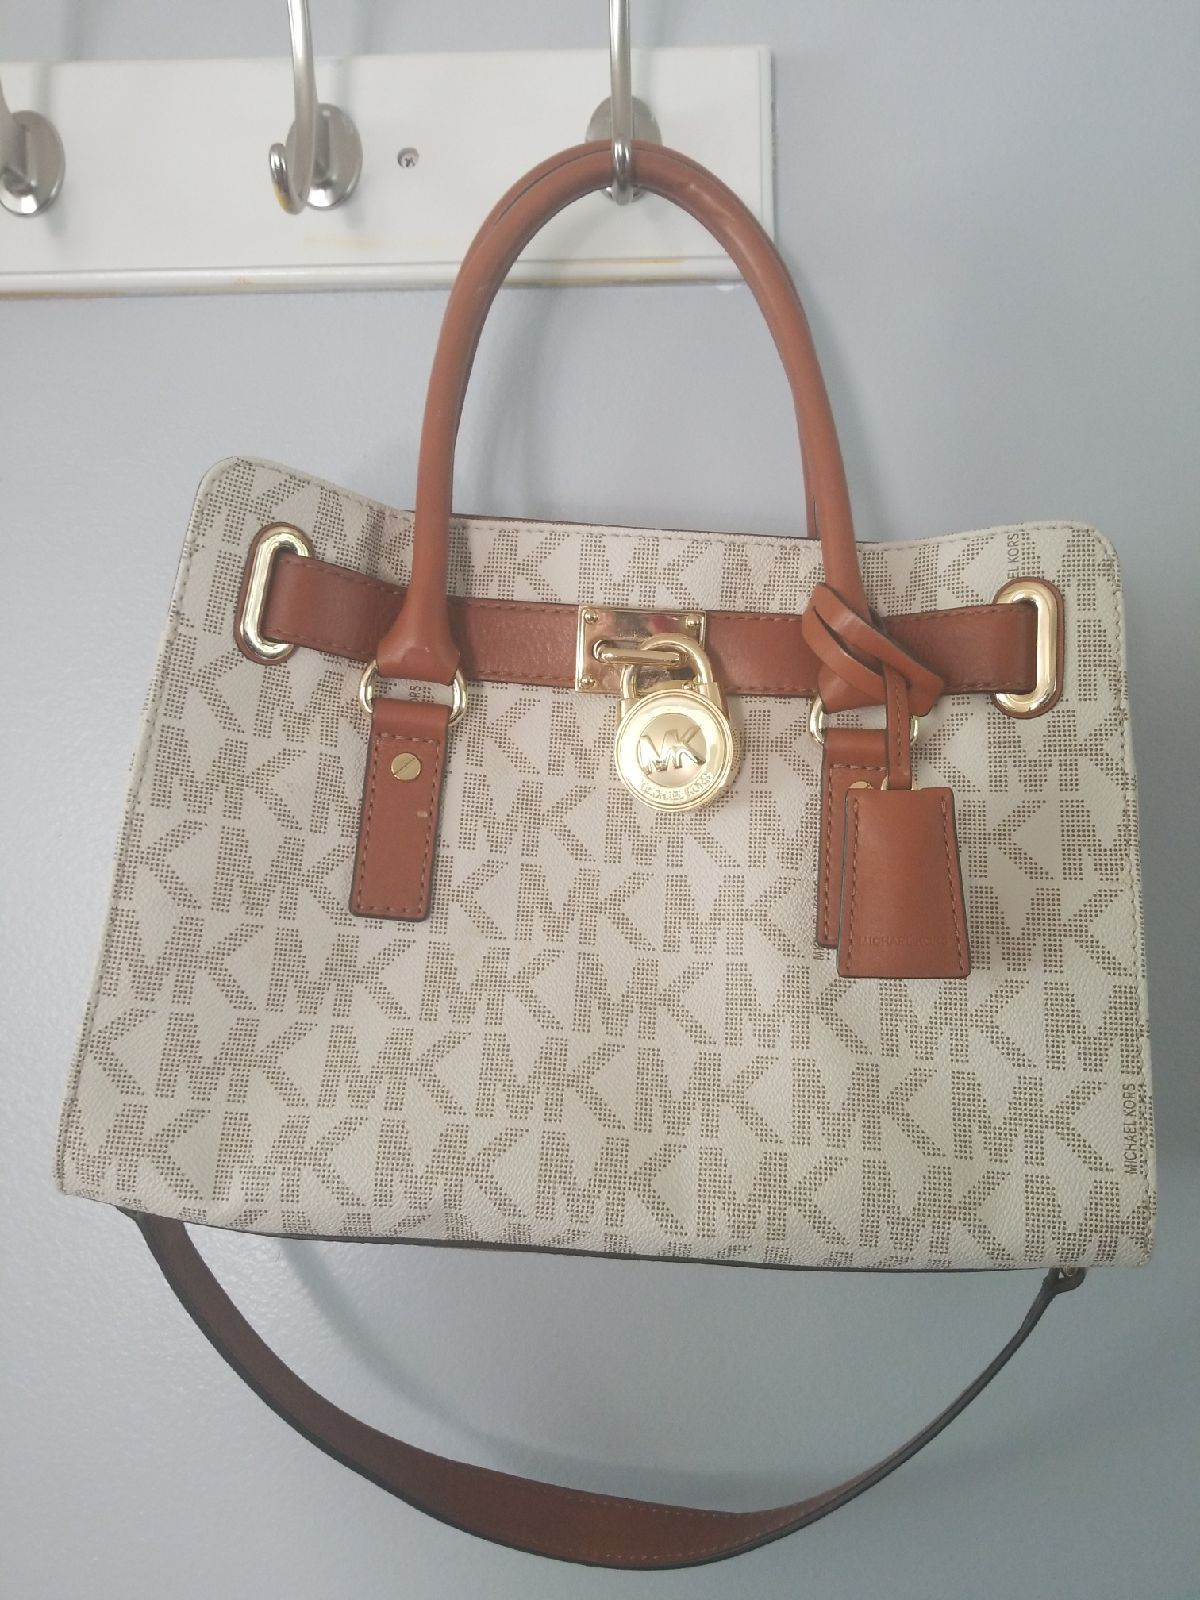 Georgeous Mk Purse White Only Used Couple Times Like New Conditions Michael Kors Handbags Michael Kors Michael Kors Hamilton